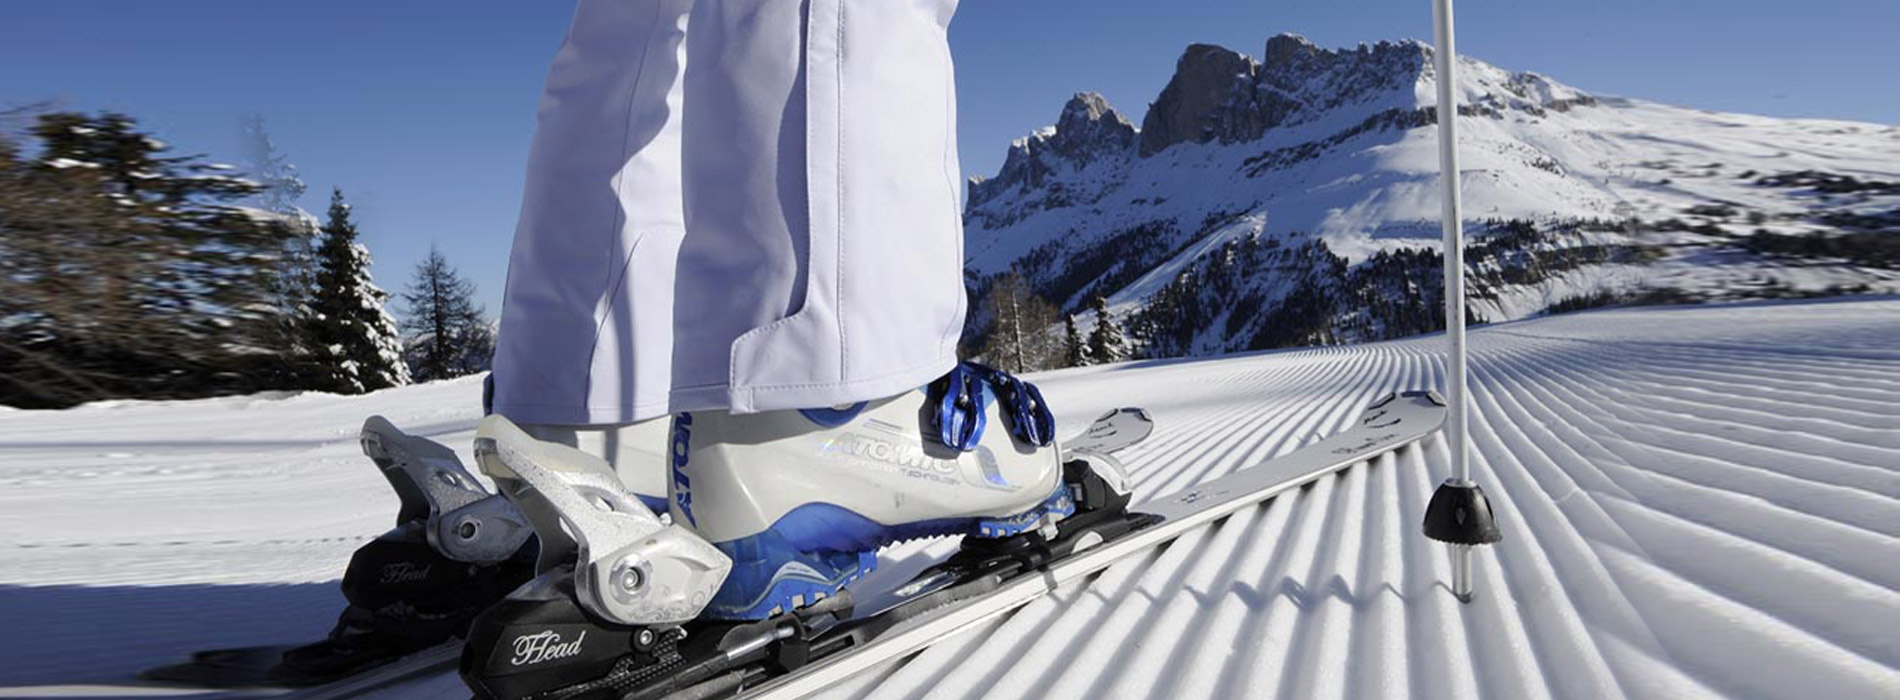 boarderline_cortina_d_ampezzo-076